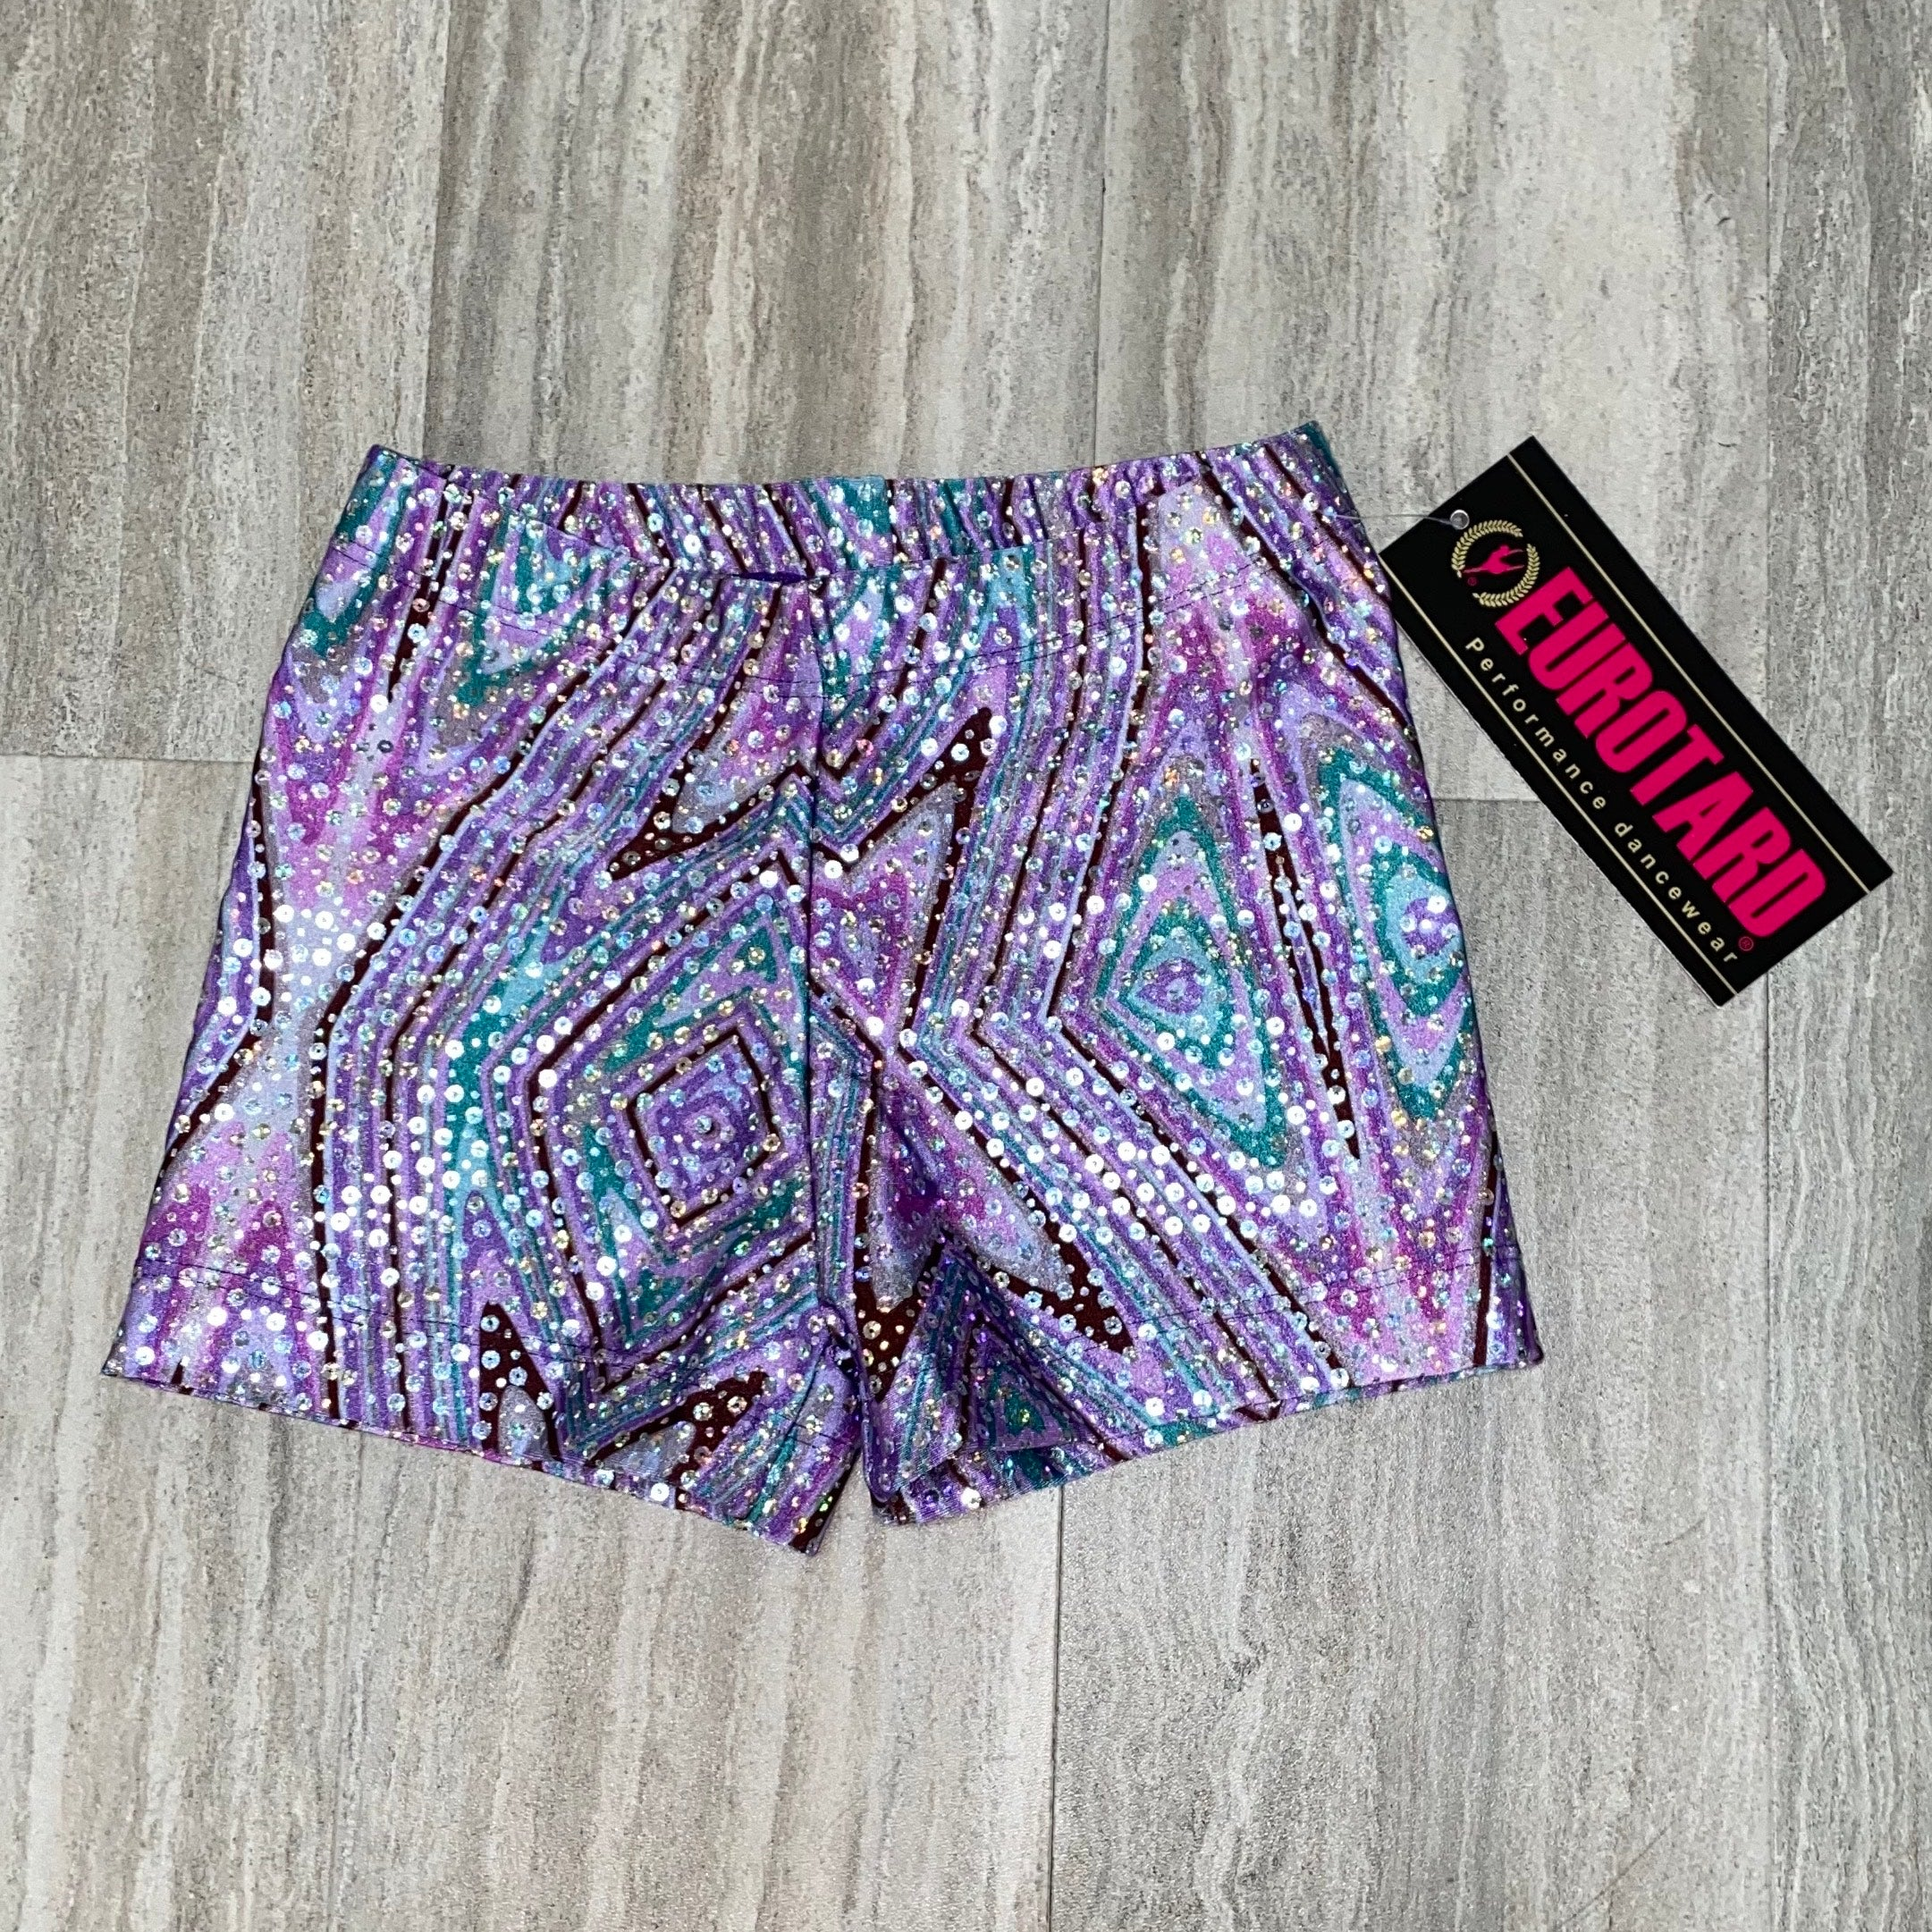 Eurotard Sparkle Mermaid Short